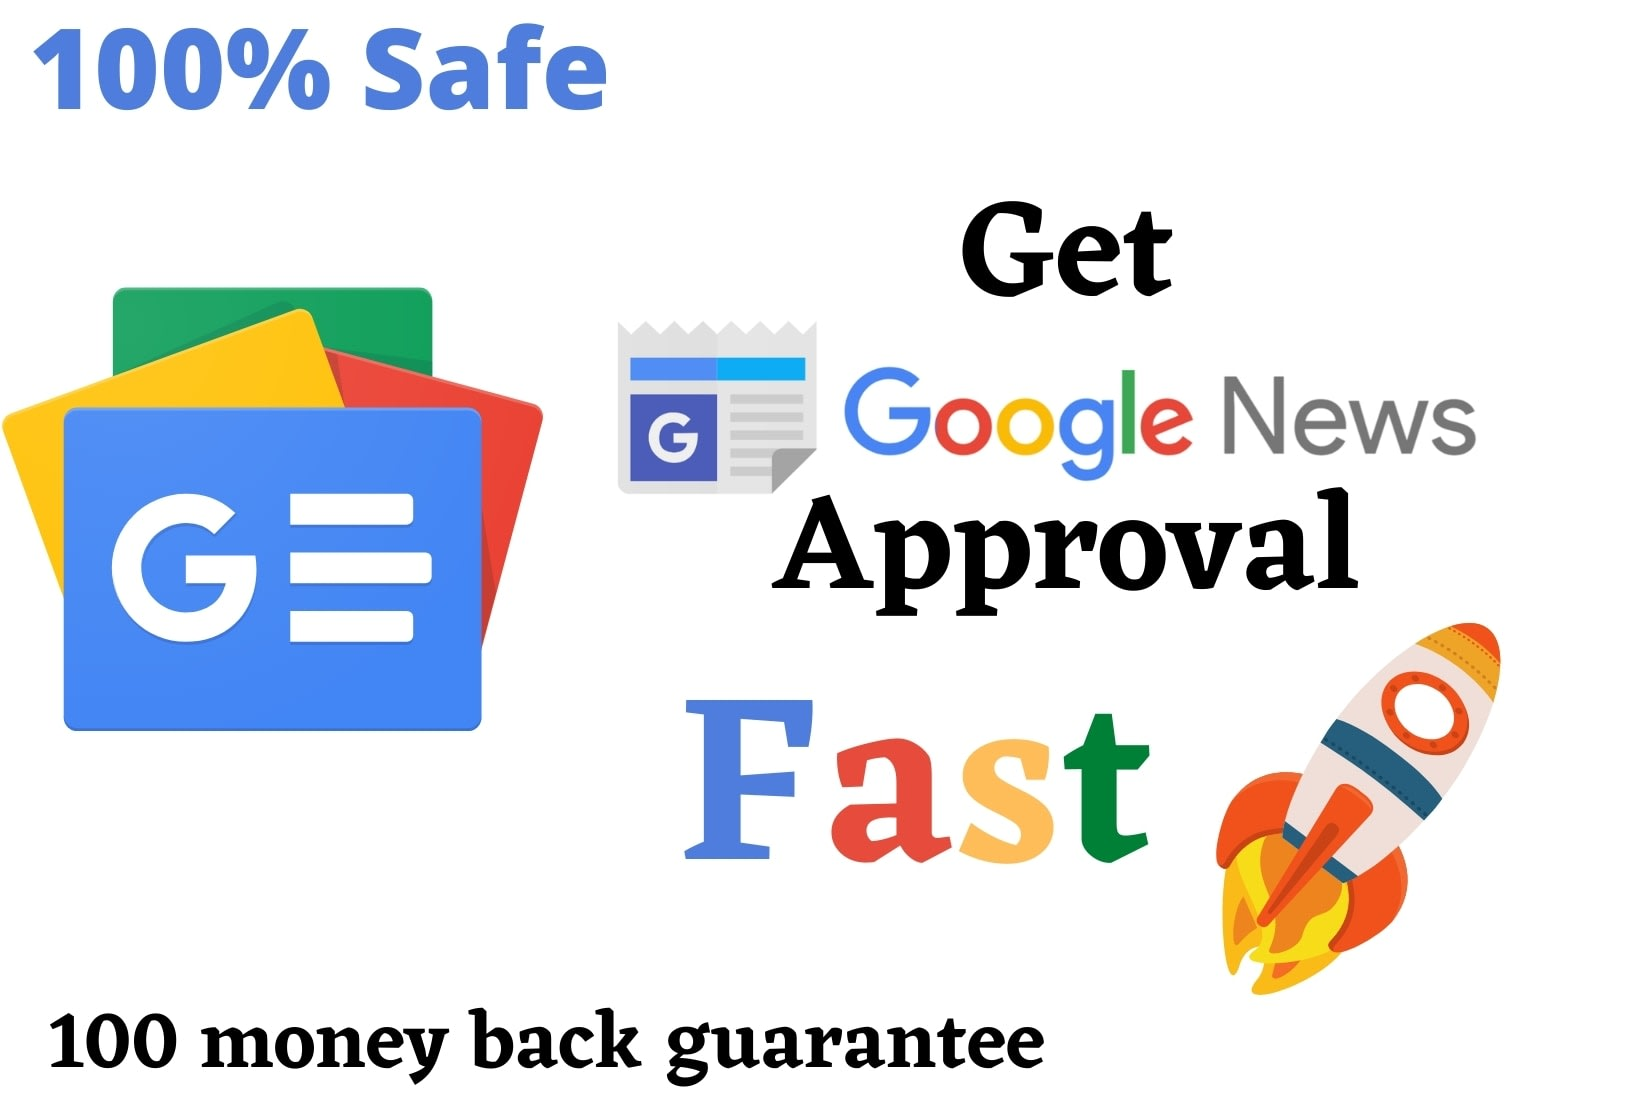 I will get google news approval